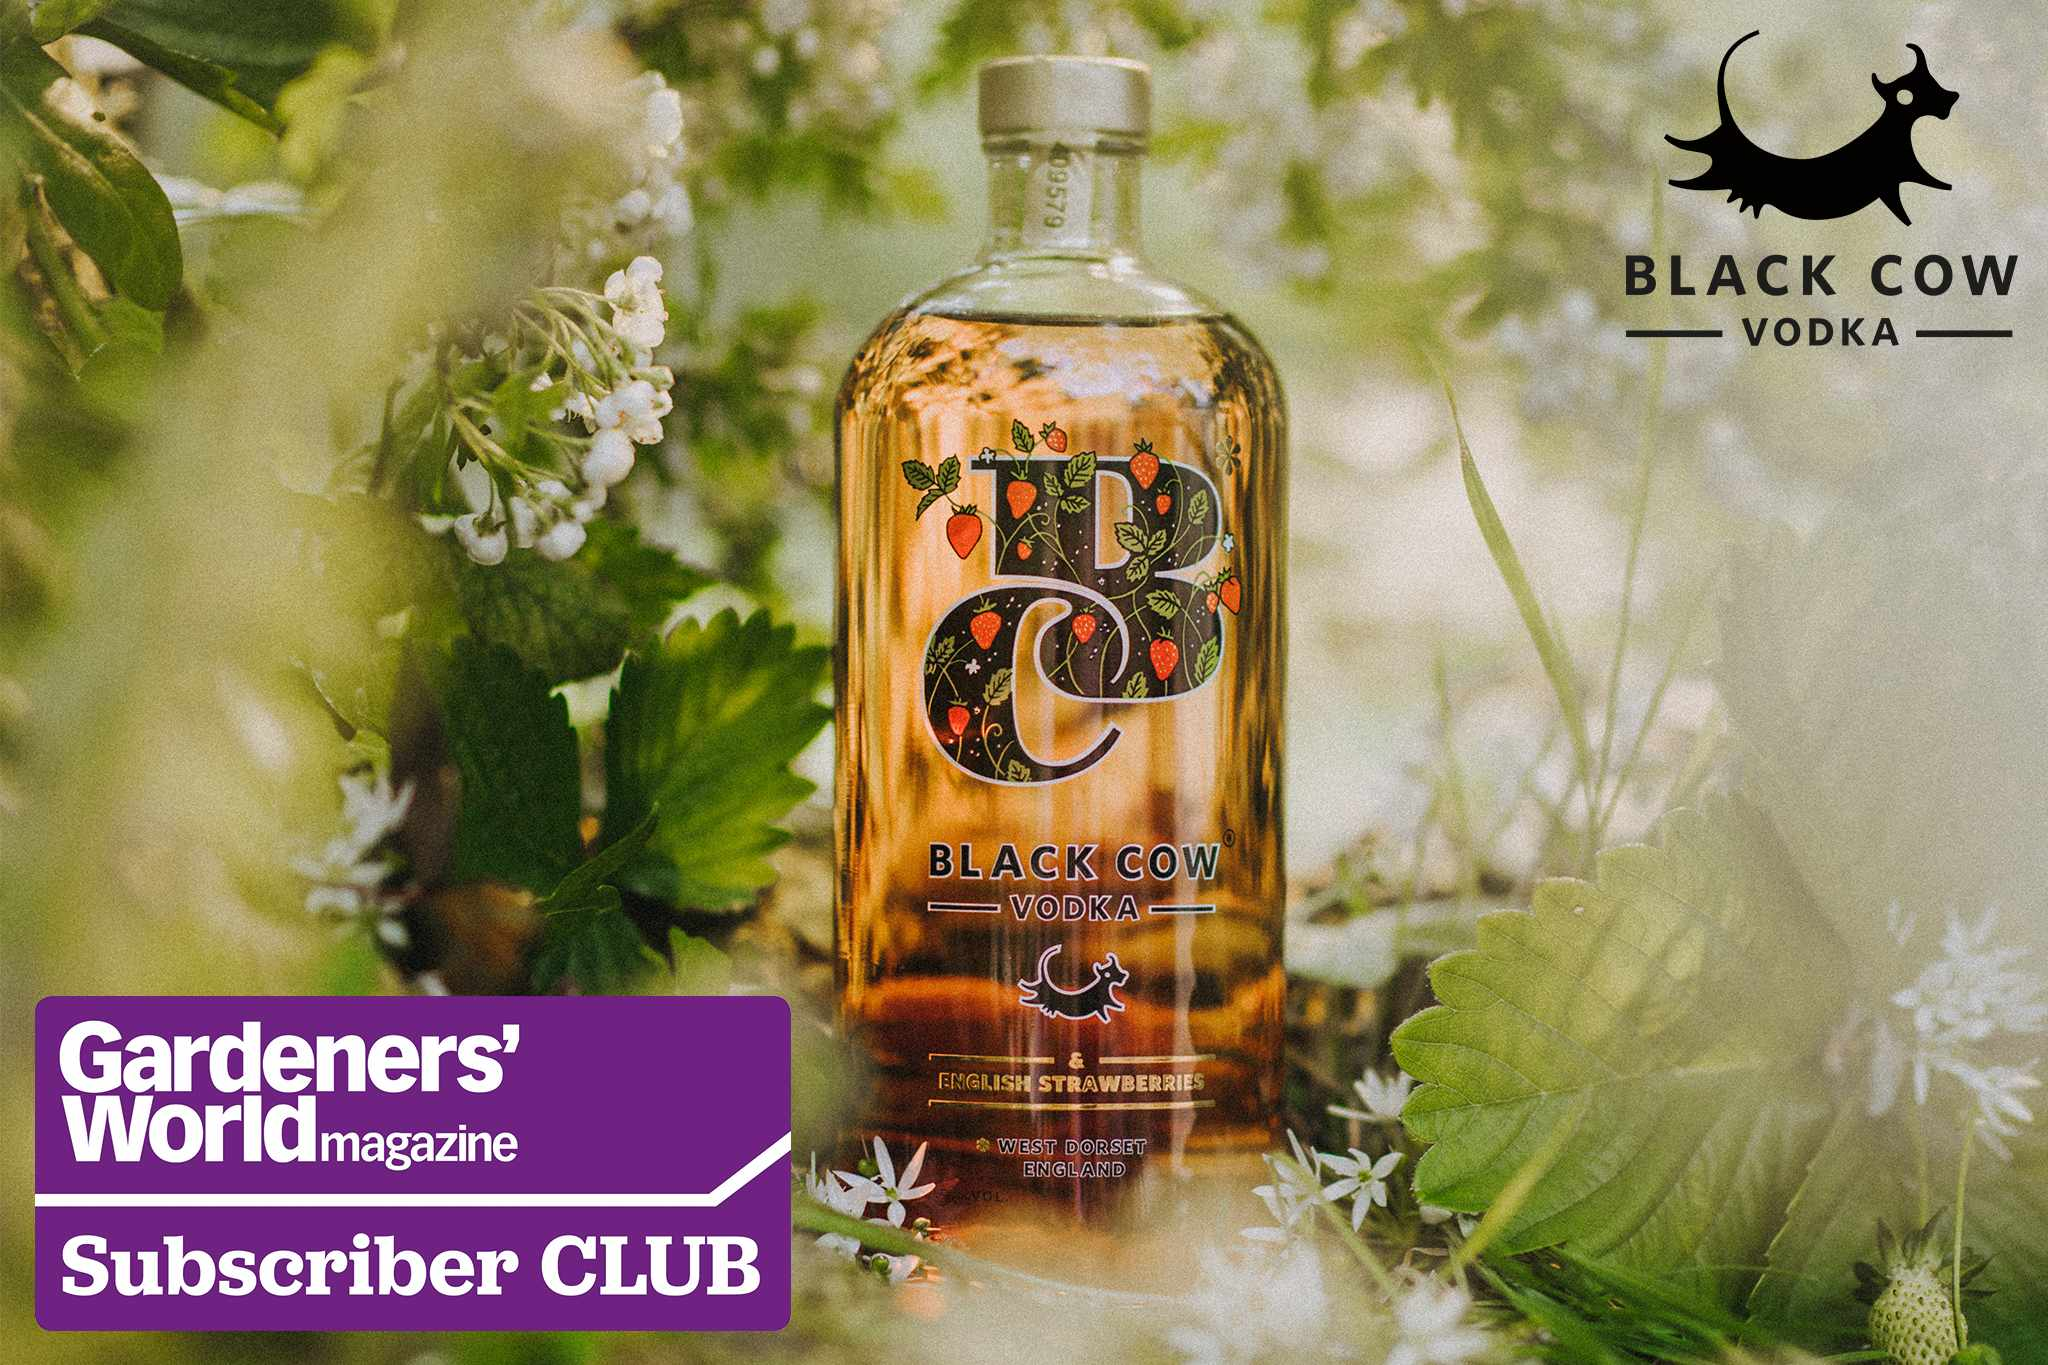 Exclusive Subscriber Club: Win a deluxe hamper from Black Cow Vodka, worth over £300